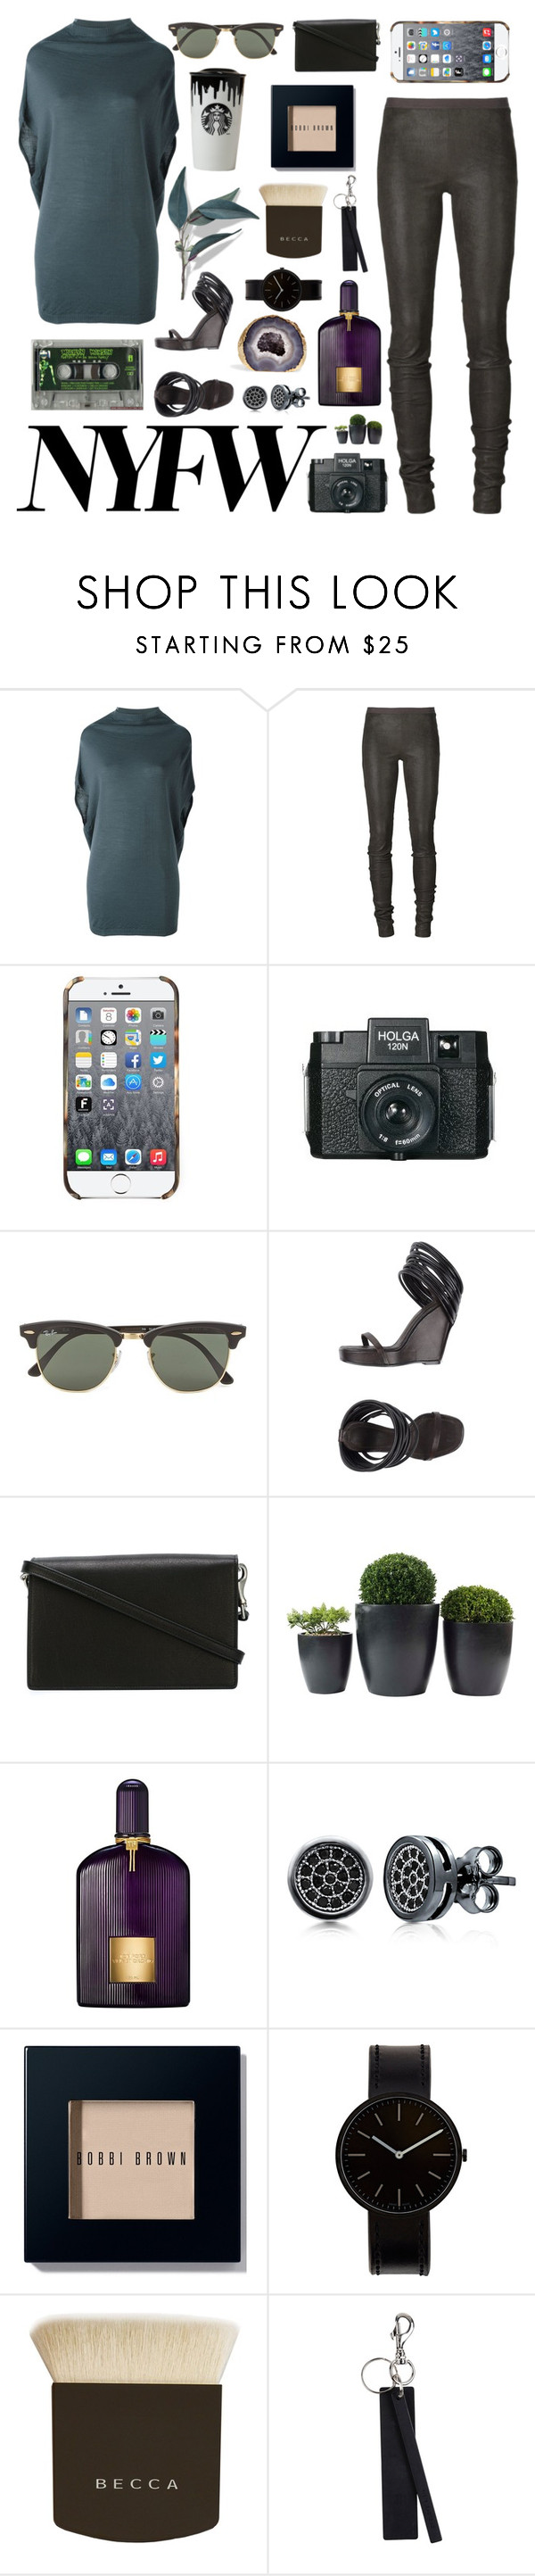 """""""Untitled #877"""" by liska1986 ❤ liked on Polyvore featuring Rick Owens, Holga, Ray-Ban, Tom Ford, BERRICLE, Bobbi Brown Cosmetics, Uniform Wares and Becca"""